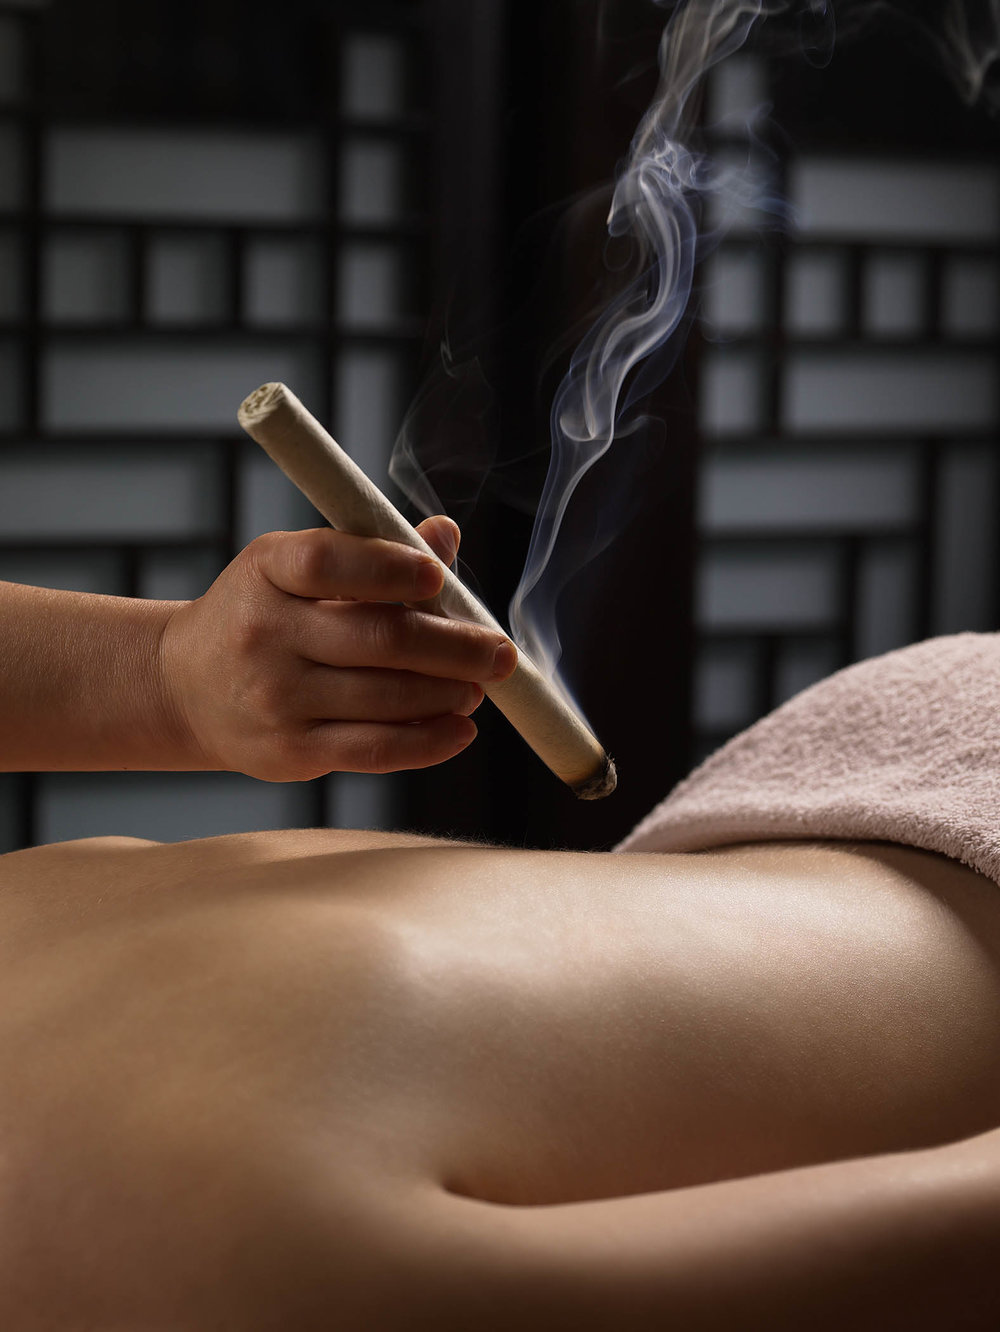 Moxibustion (Moxa) - No, it's not a torture thing. The softly rolled stick of mugwort is burned to provide a steady and consistent heat towards a localized area, promoting circulation and relieving tension. This therapy can be done by itself, or together with acupuncture for increased effectiveness.